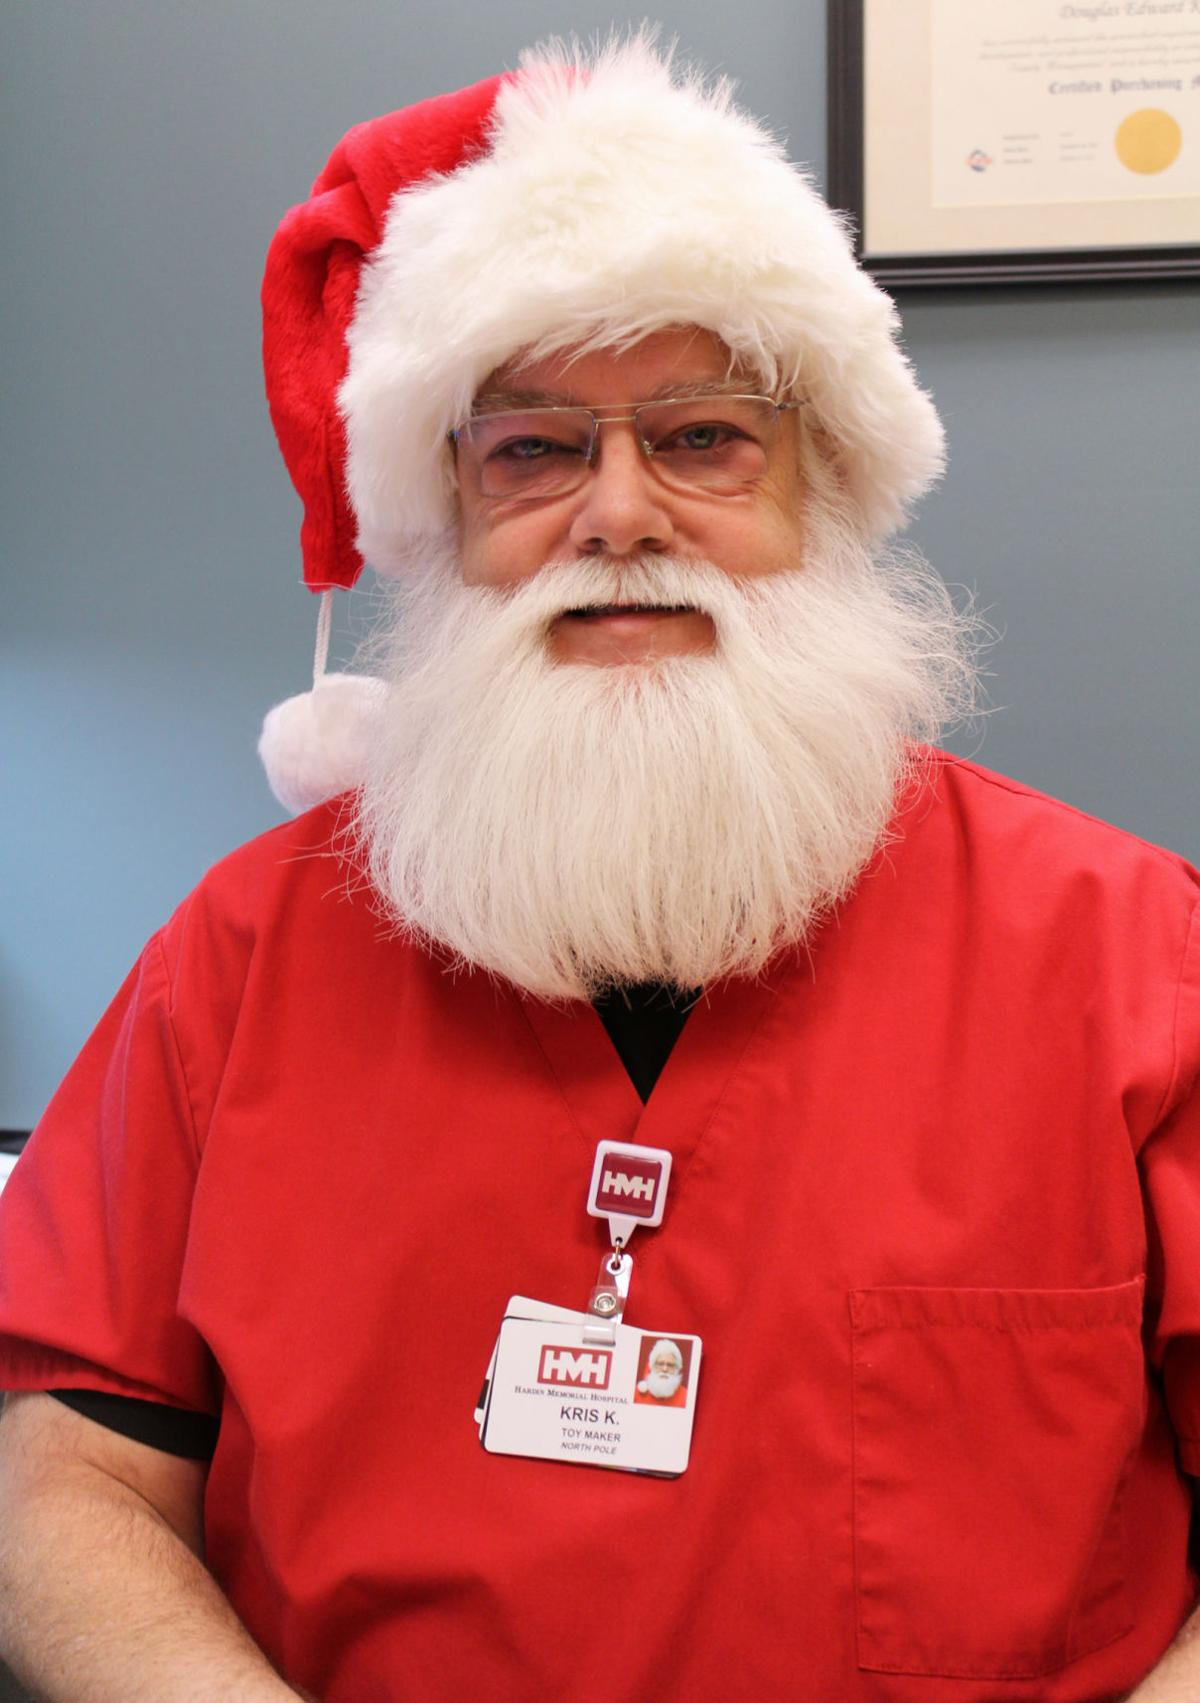 Playing the role of Santa